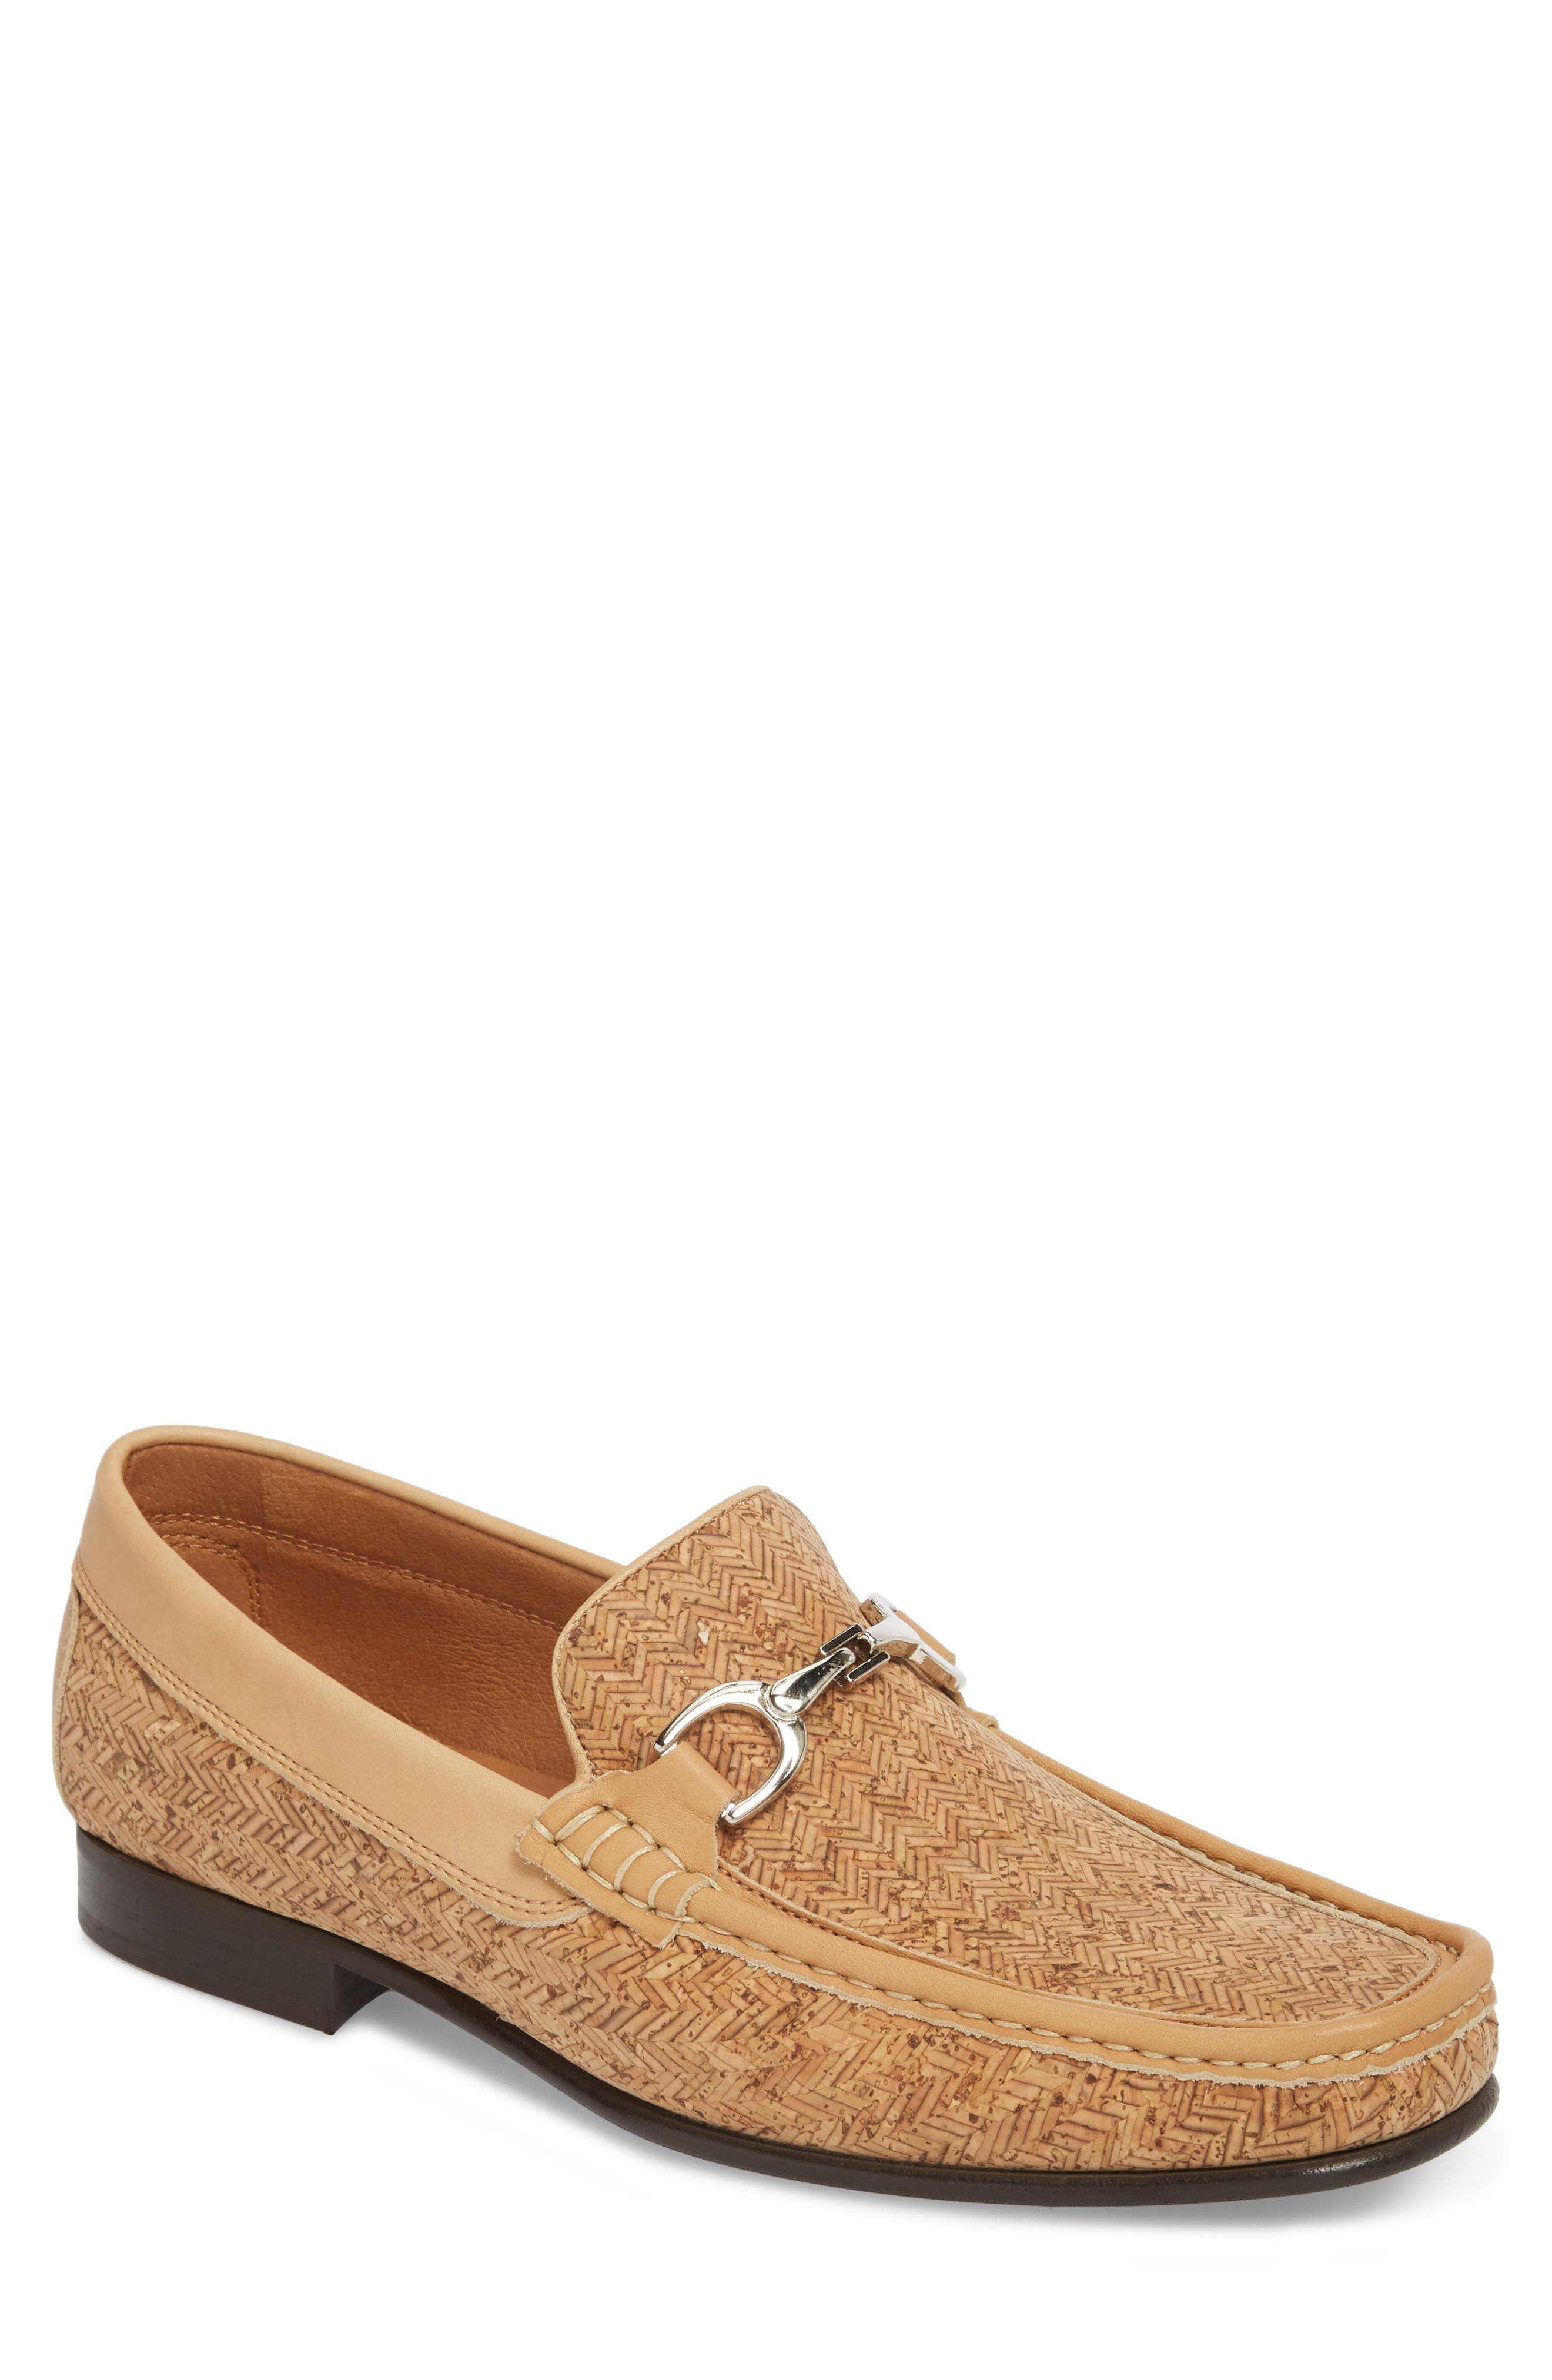 Darrin Loafer,                             Main thumbnail 1, color,                             250